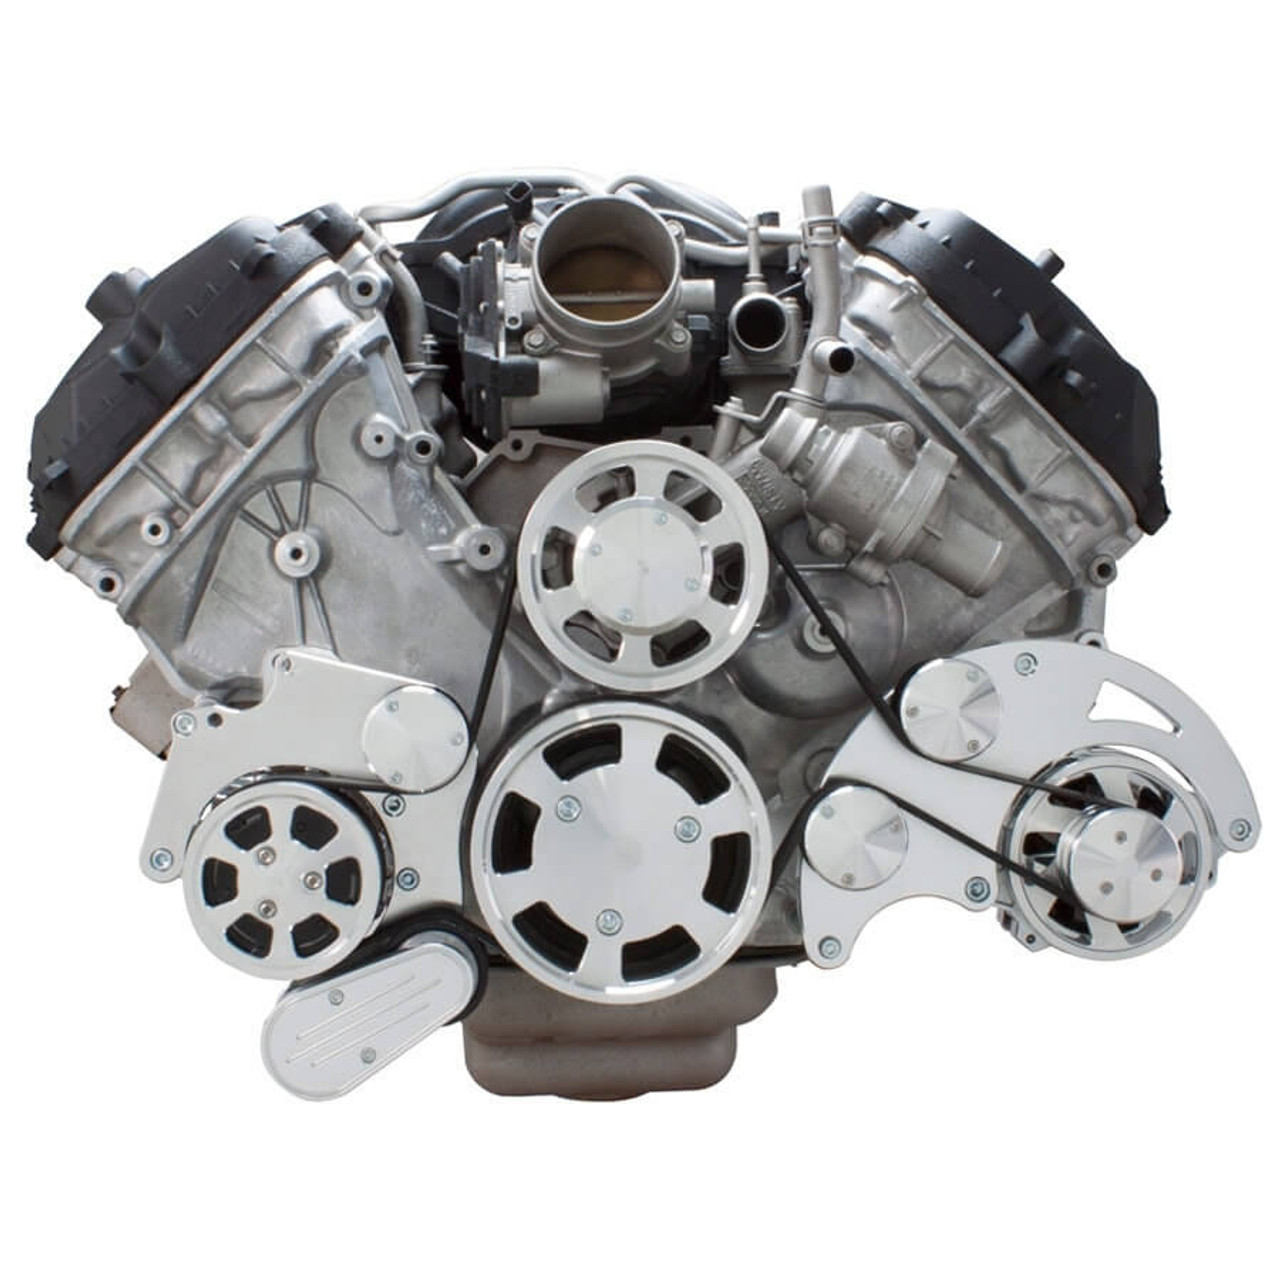 ... Serpentine System for Ford Coyote 5.0 - AC & Alternator ...